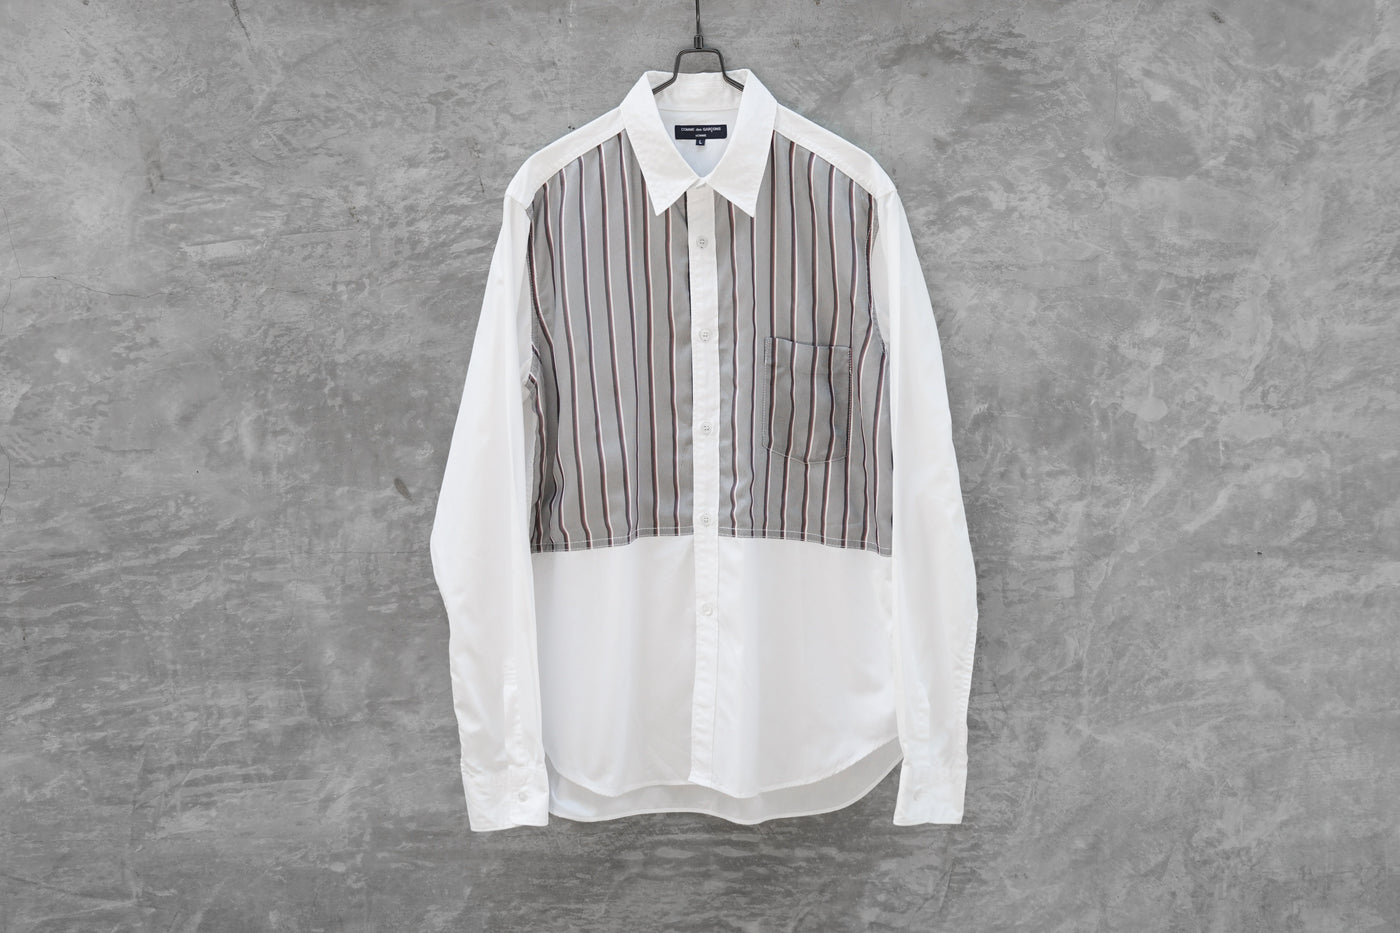 Comme Des Garcons Homme Stripe Patchwork Long Sleeves Shirt AD2009 - OKURA